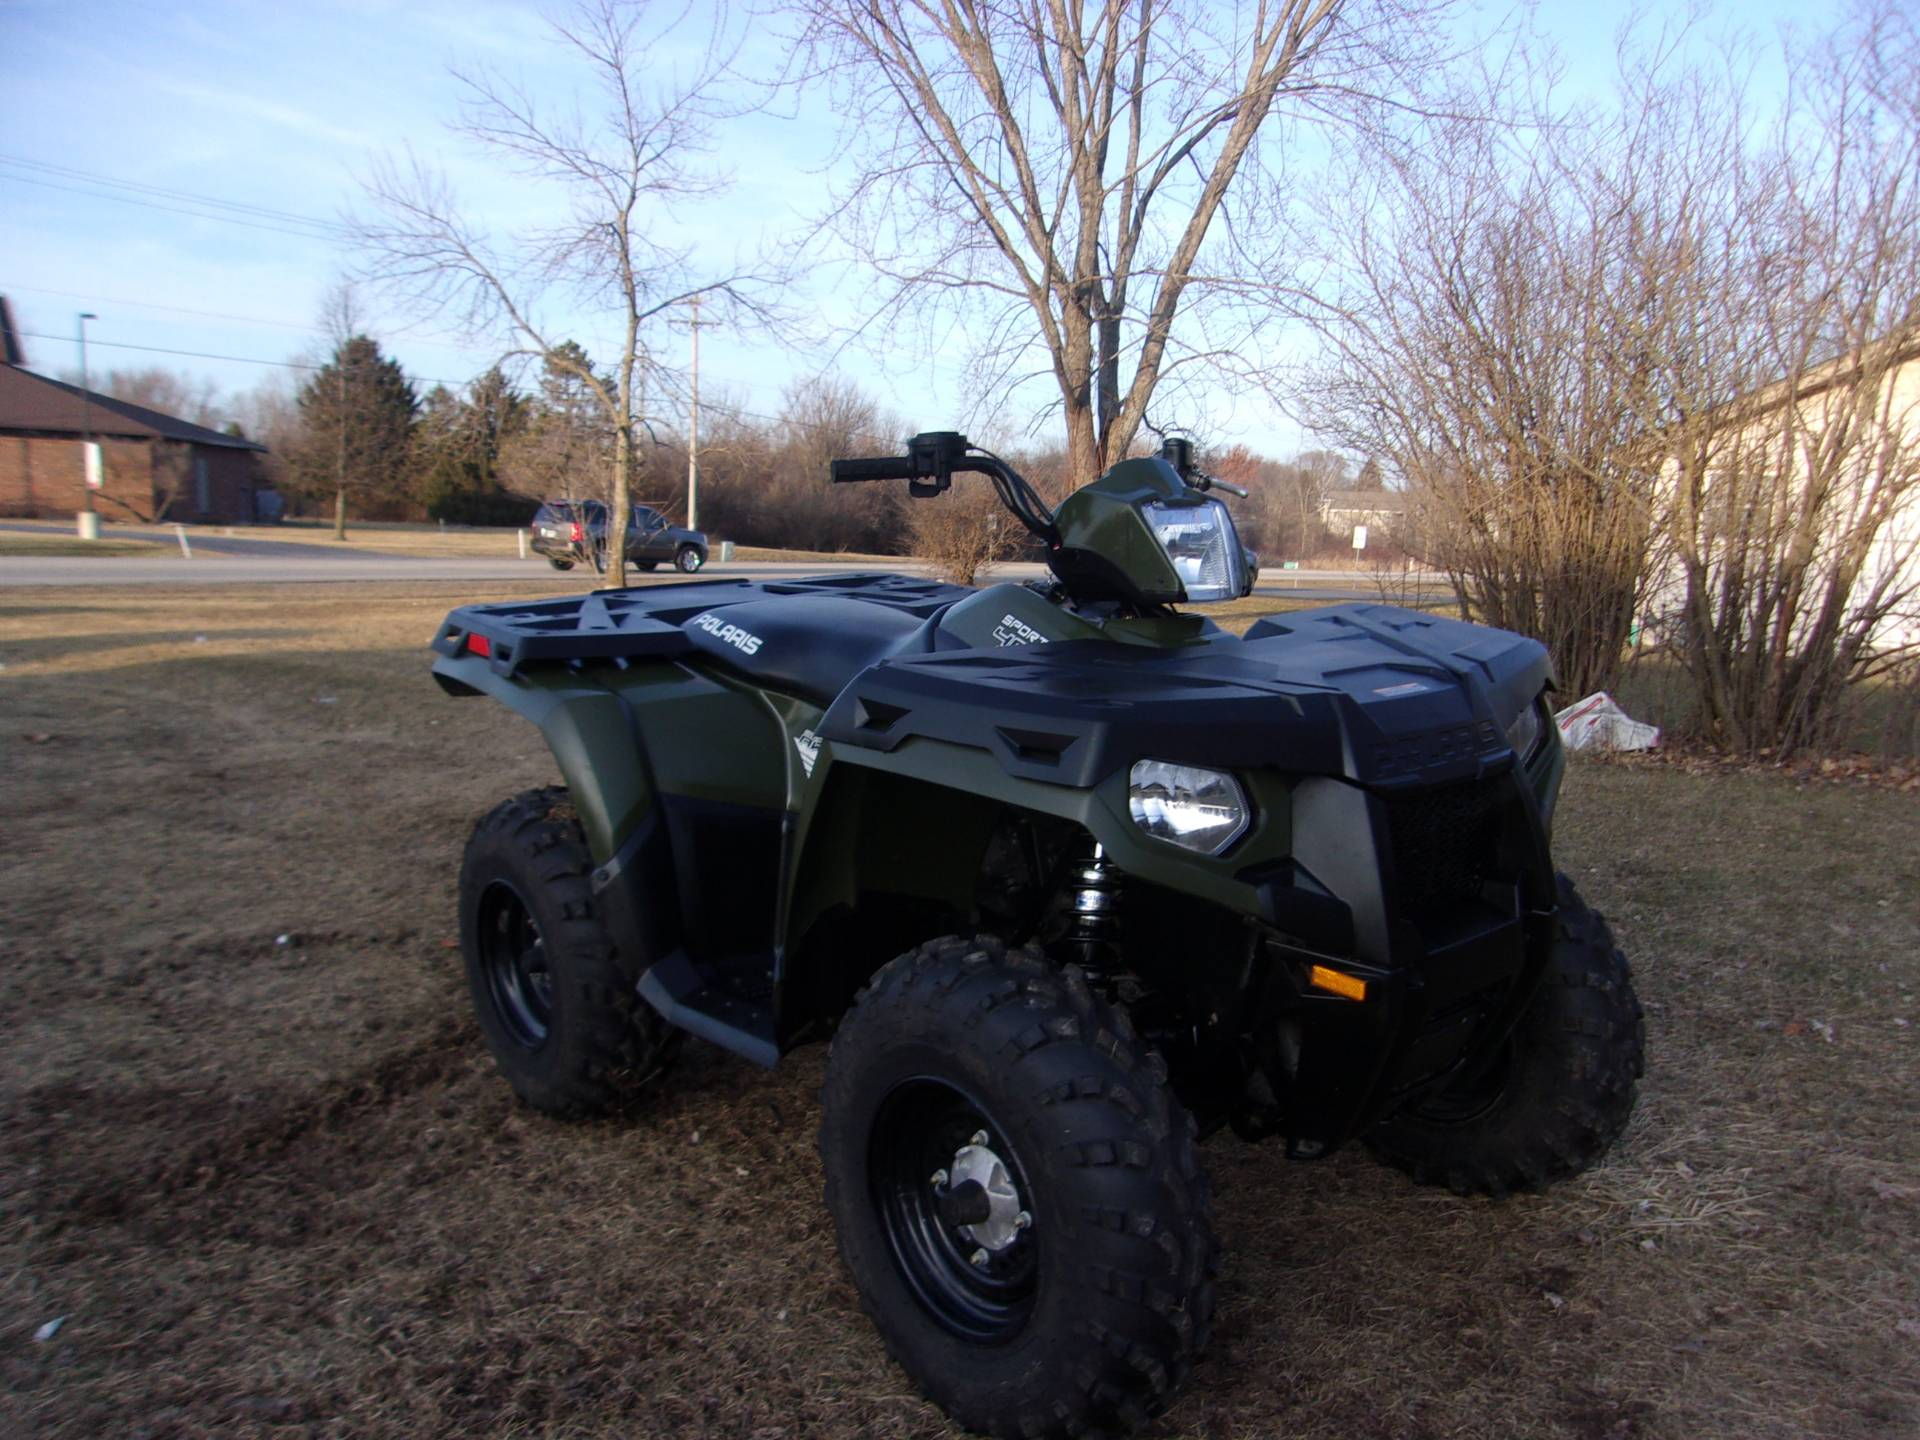 2013 Polaris Sportsman® 400 H.O. in Mukwonago, Wisconsin - Photo 7